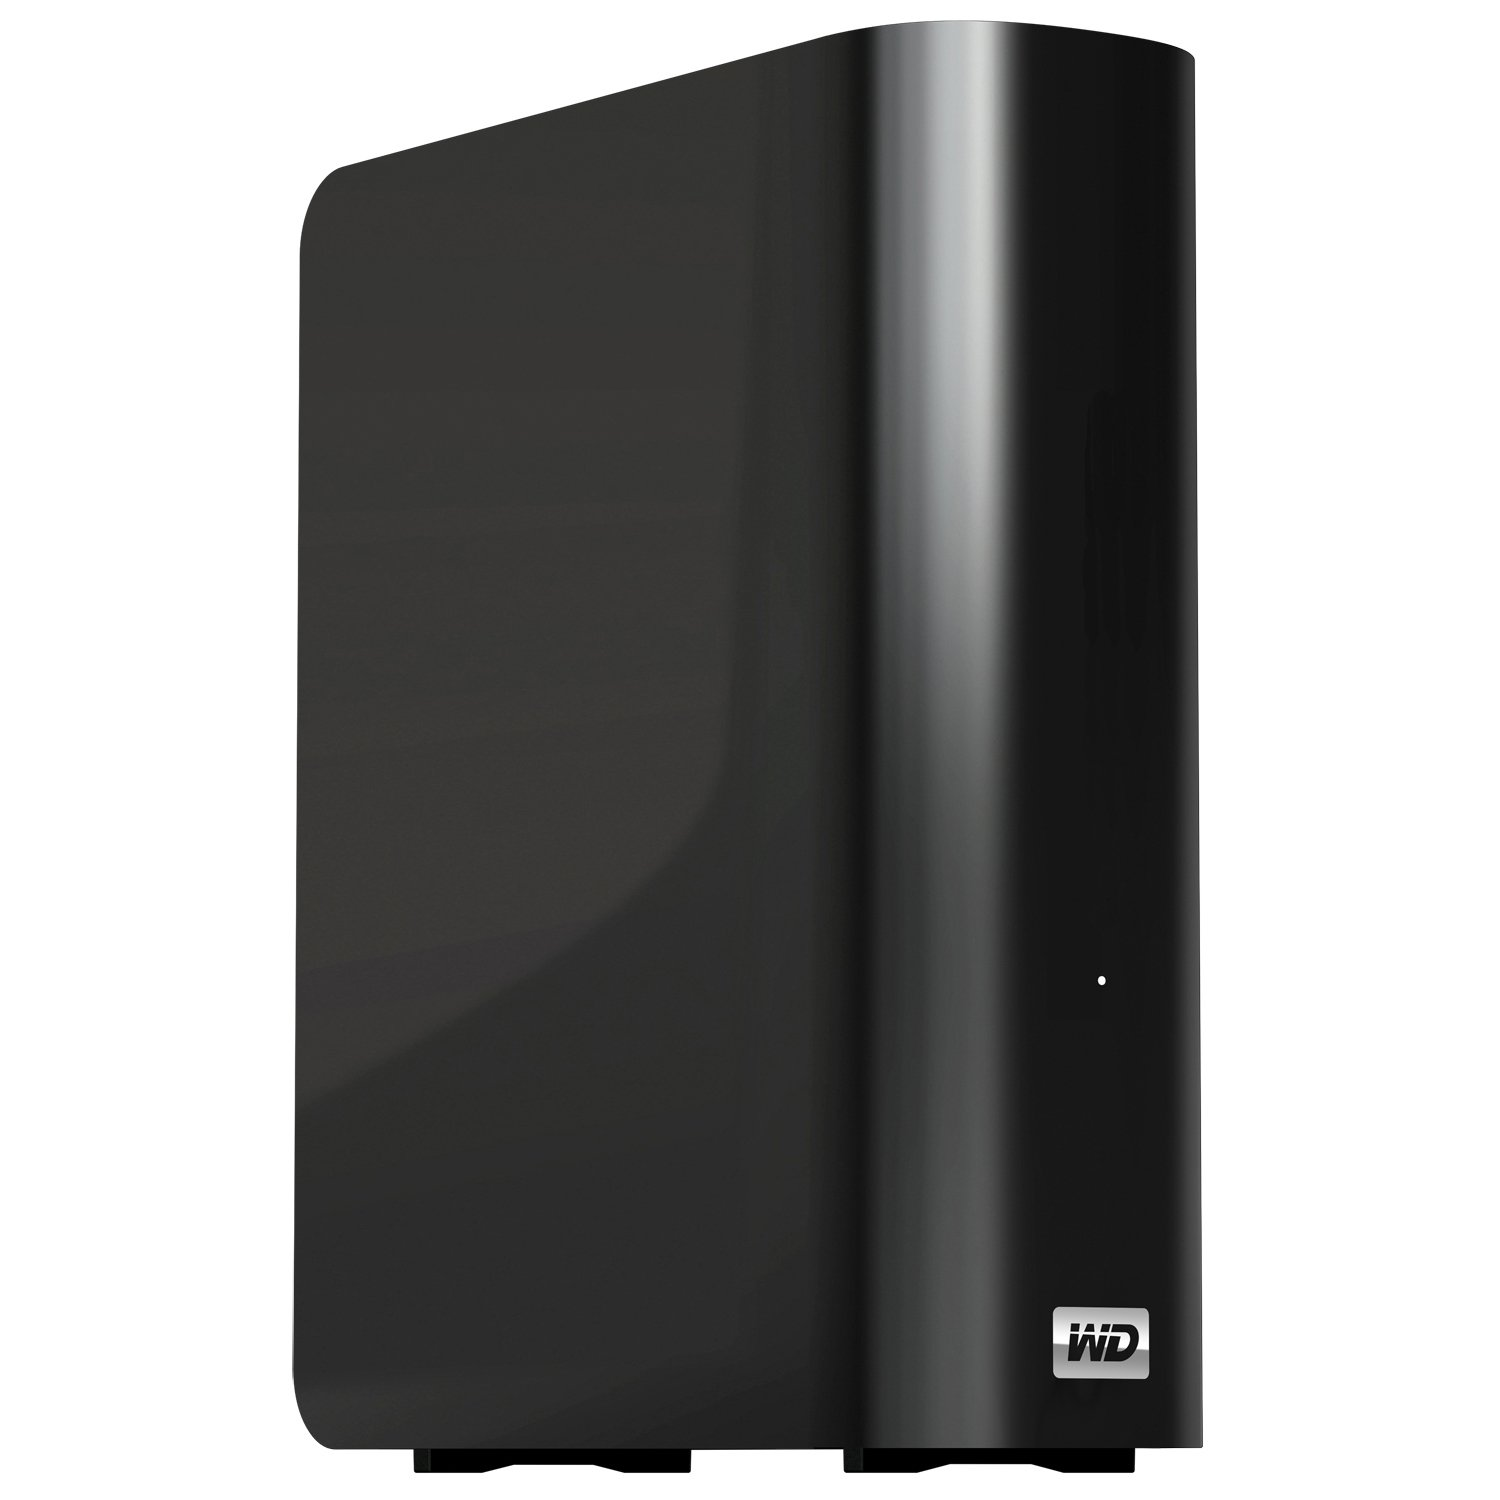 WD My Book 4TB External Hard Drive Storage USB 3.0 File Backup and Storage by Western Digital (Image #1)